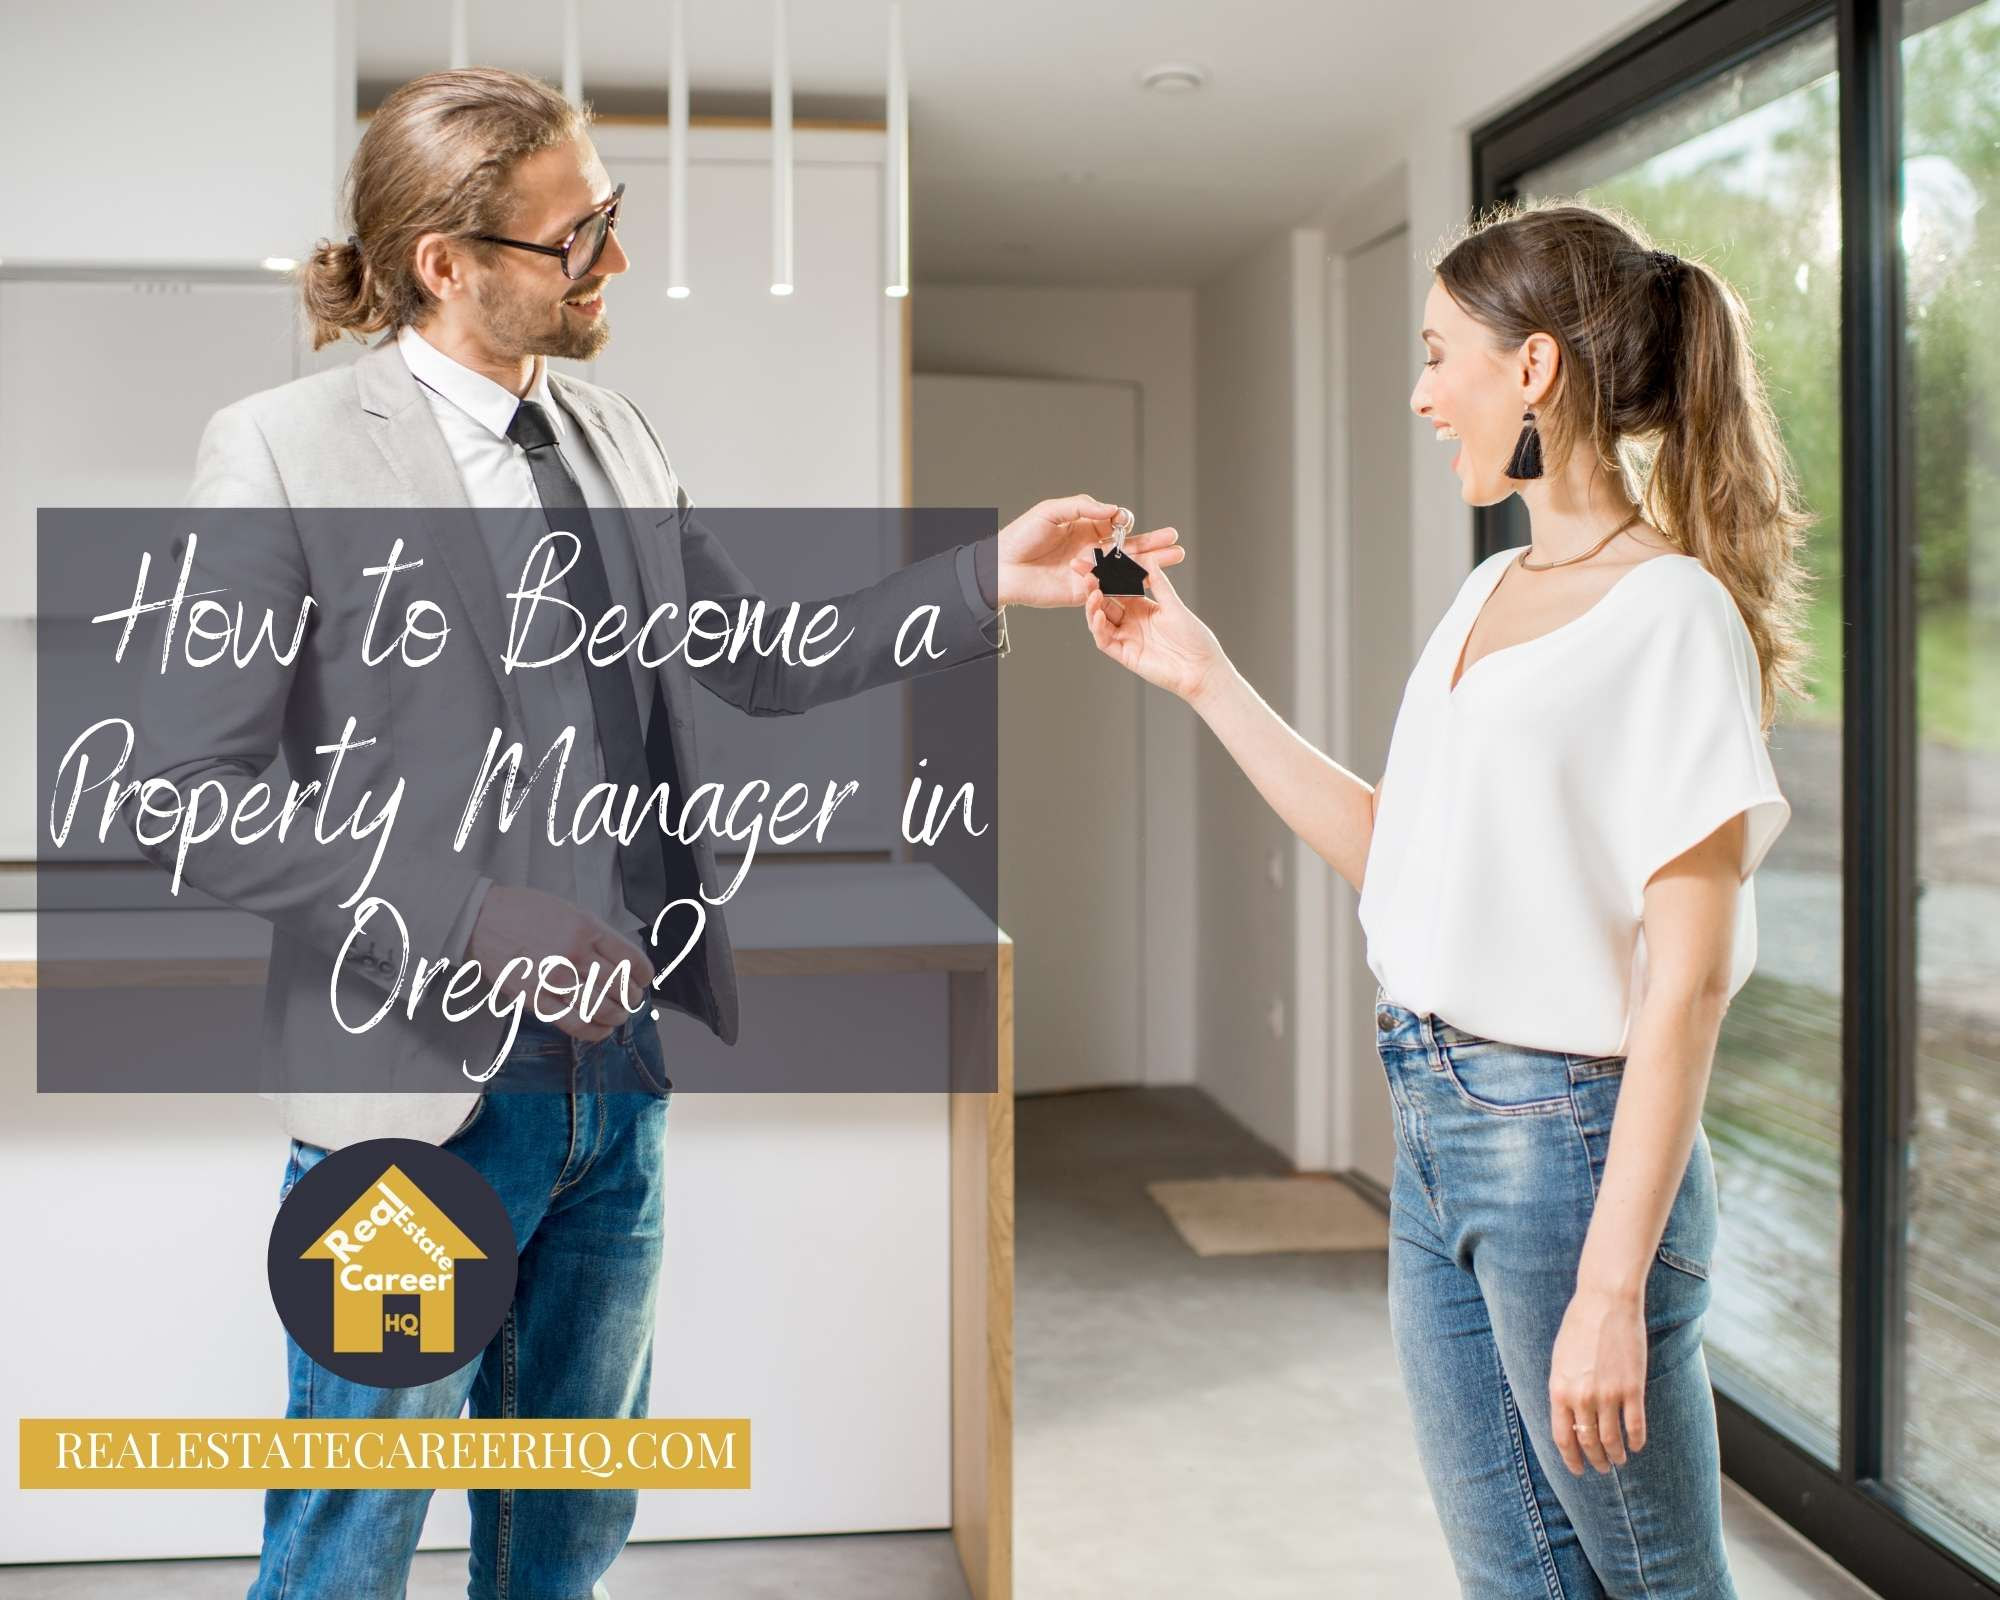 How to become a property manager in Oregon